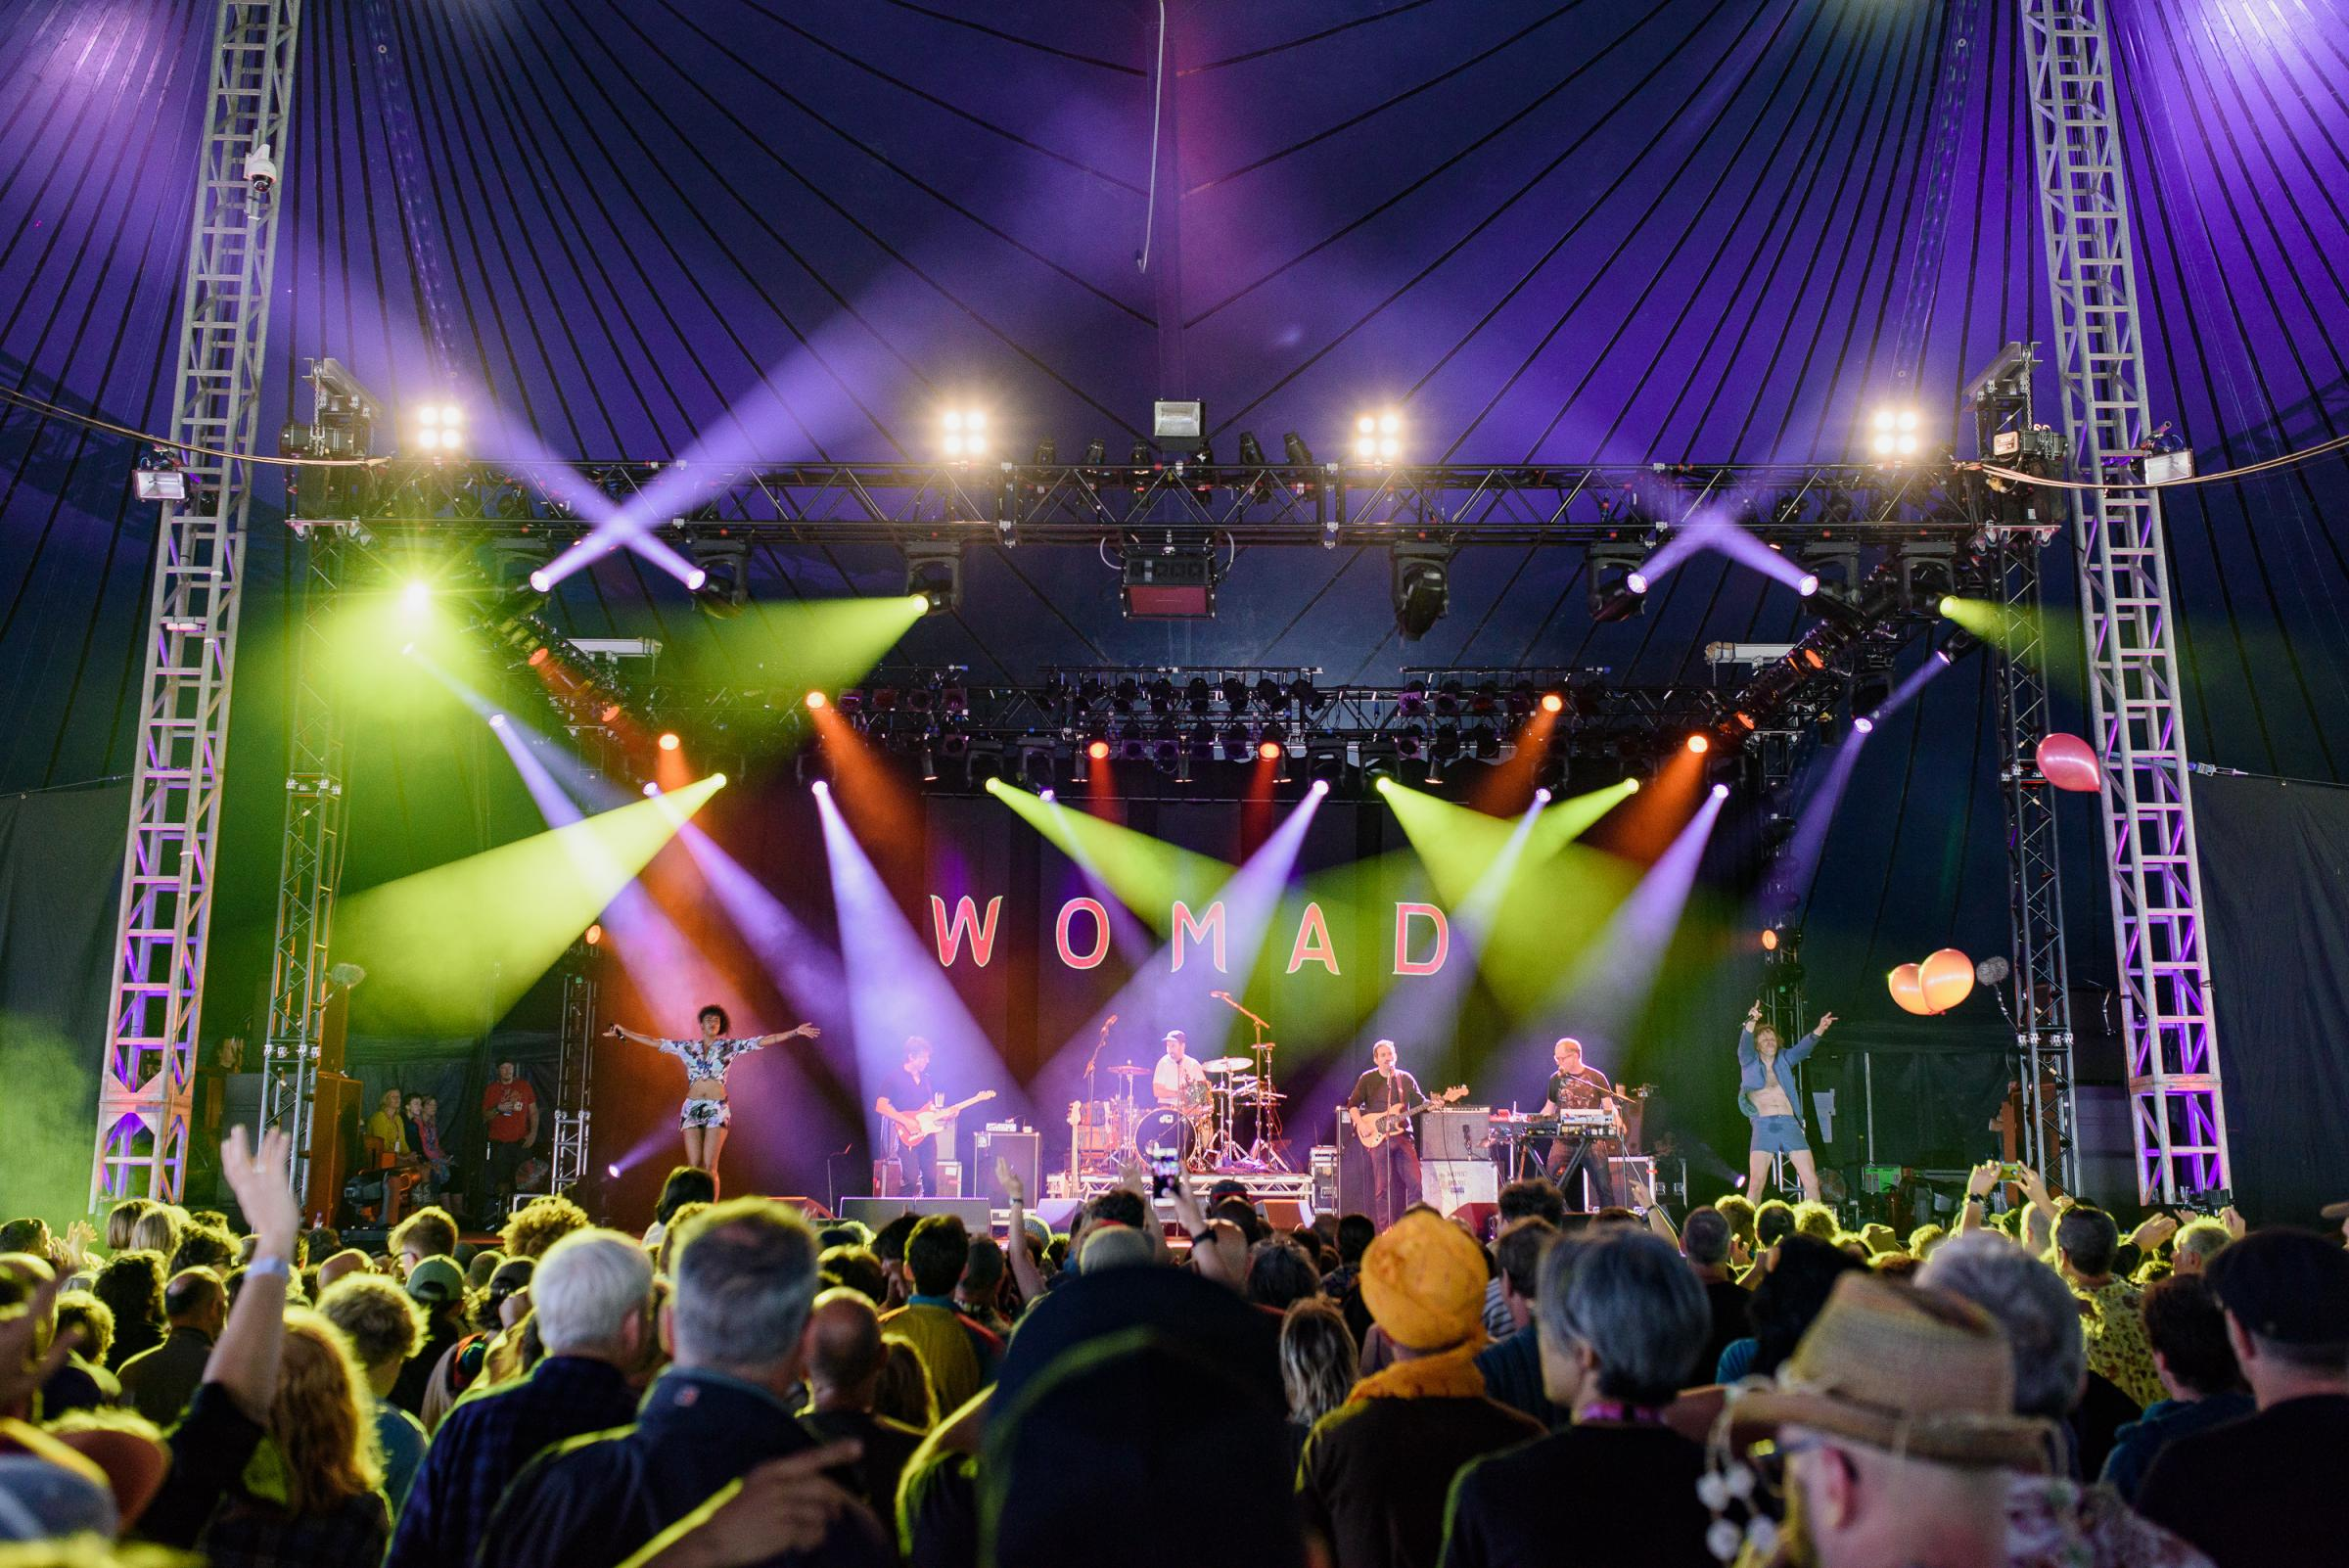 WOMAD 2018 has announced the first artists - Mike Massaro